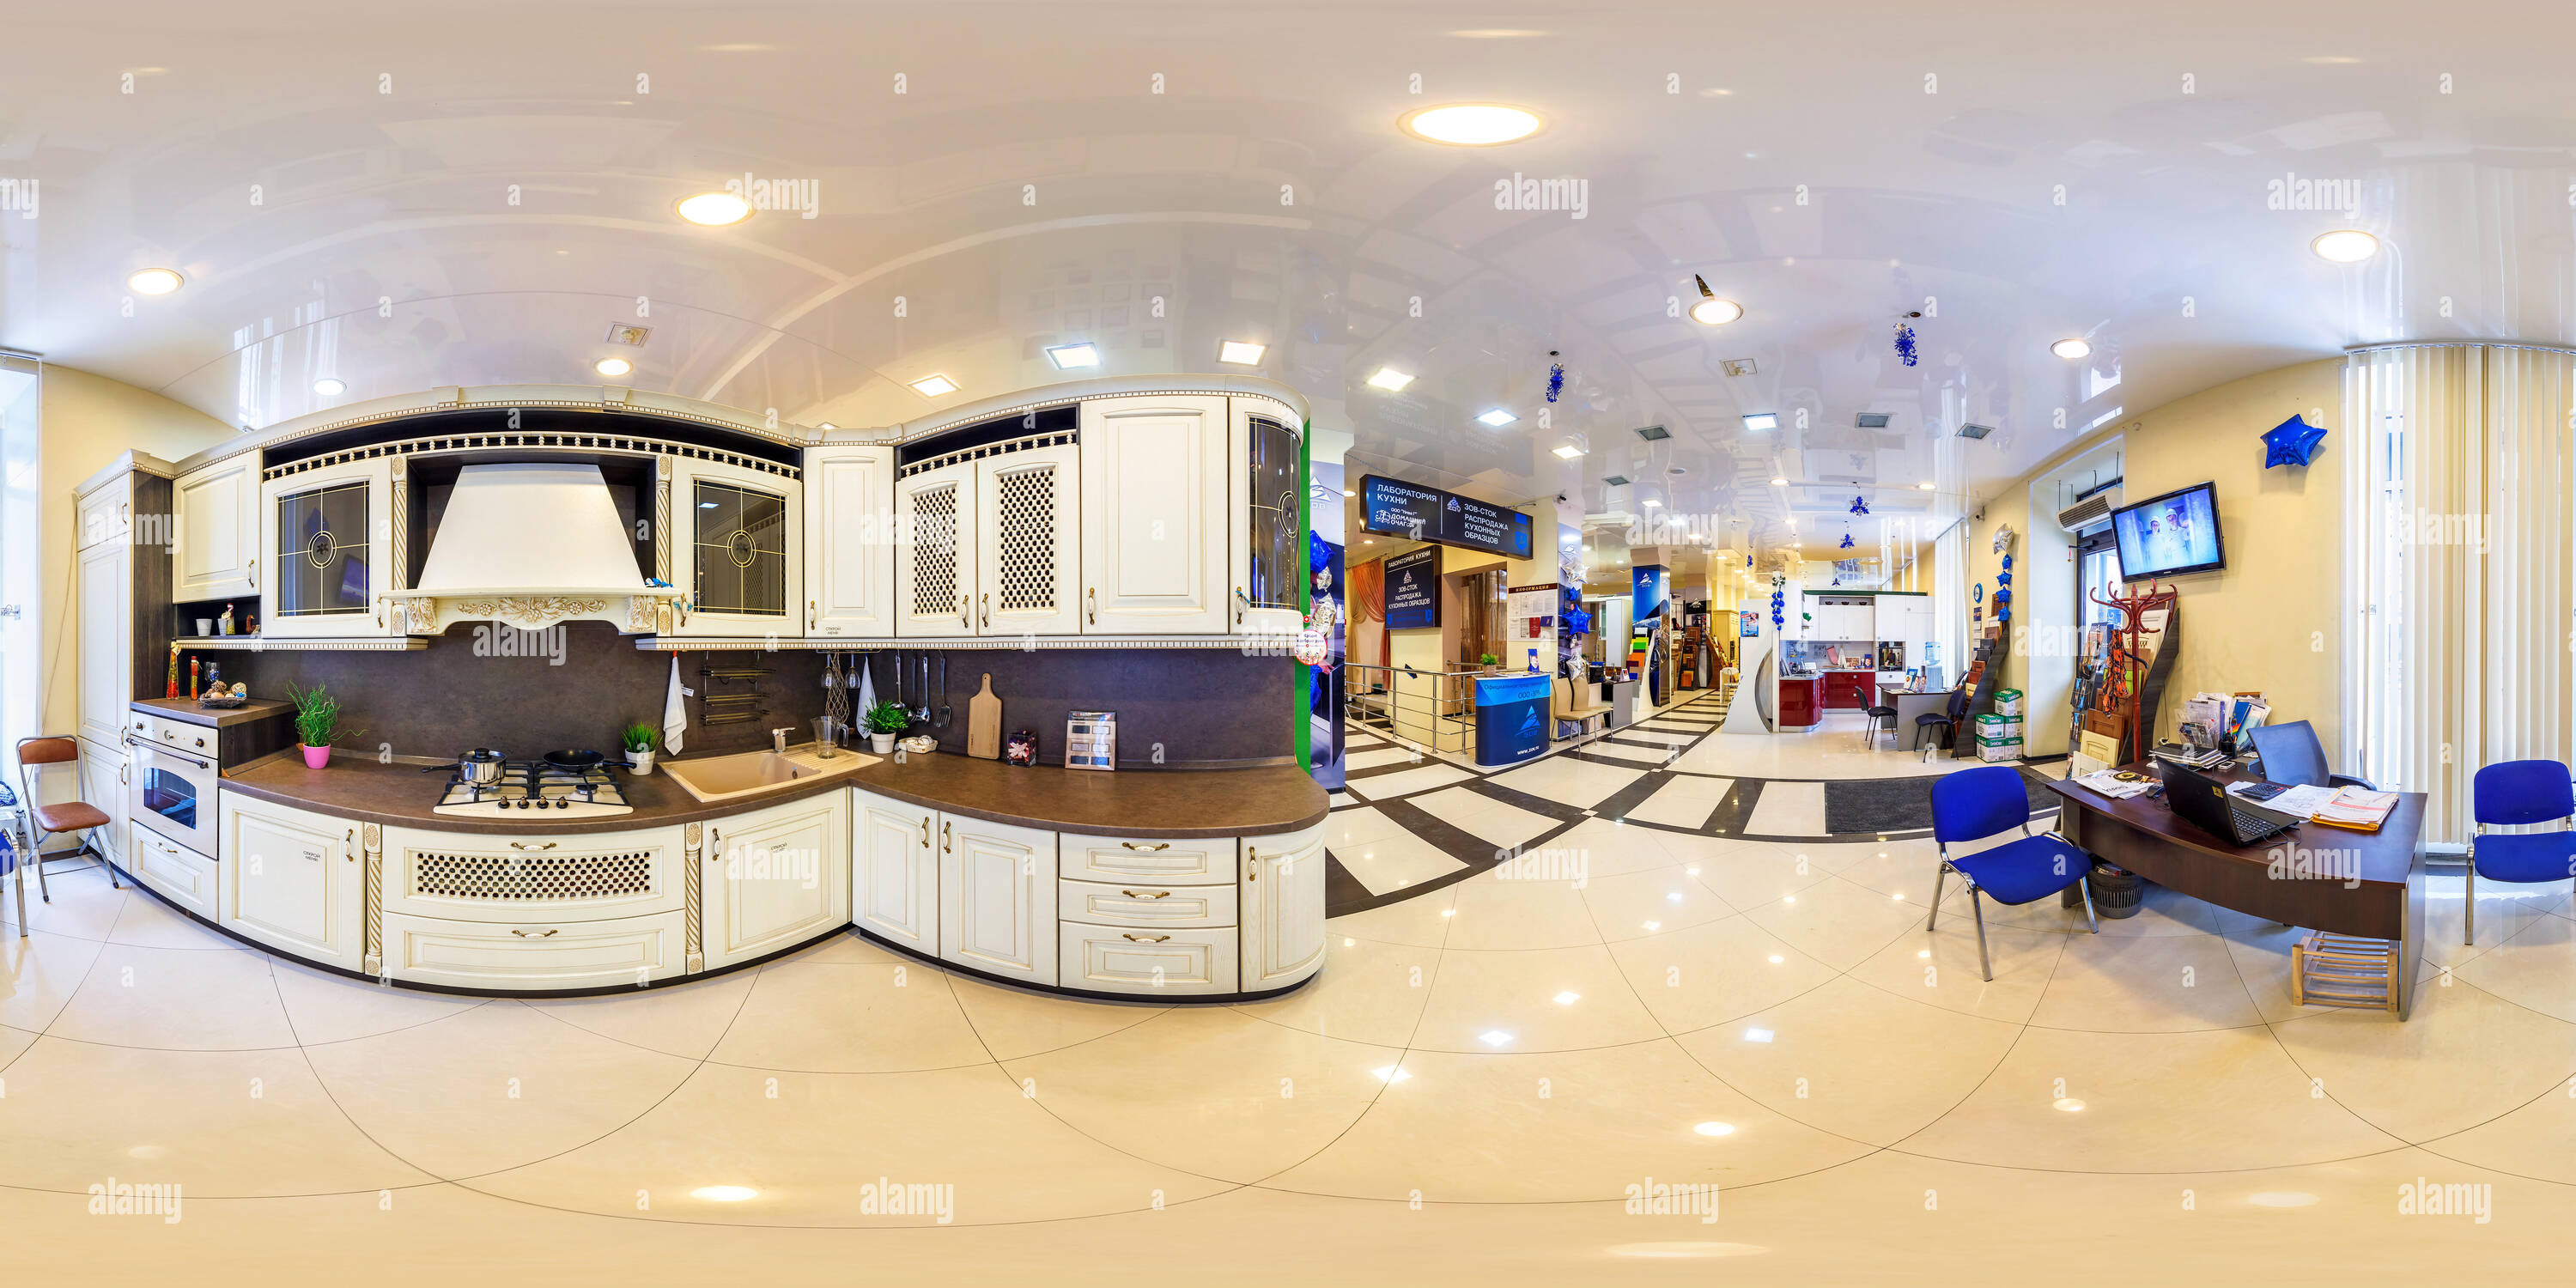 Moscow russia february 2013 full spherical 360 by 180 degrees seamless panorama in interior modern furniture kitchen store in equirectangular equ